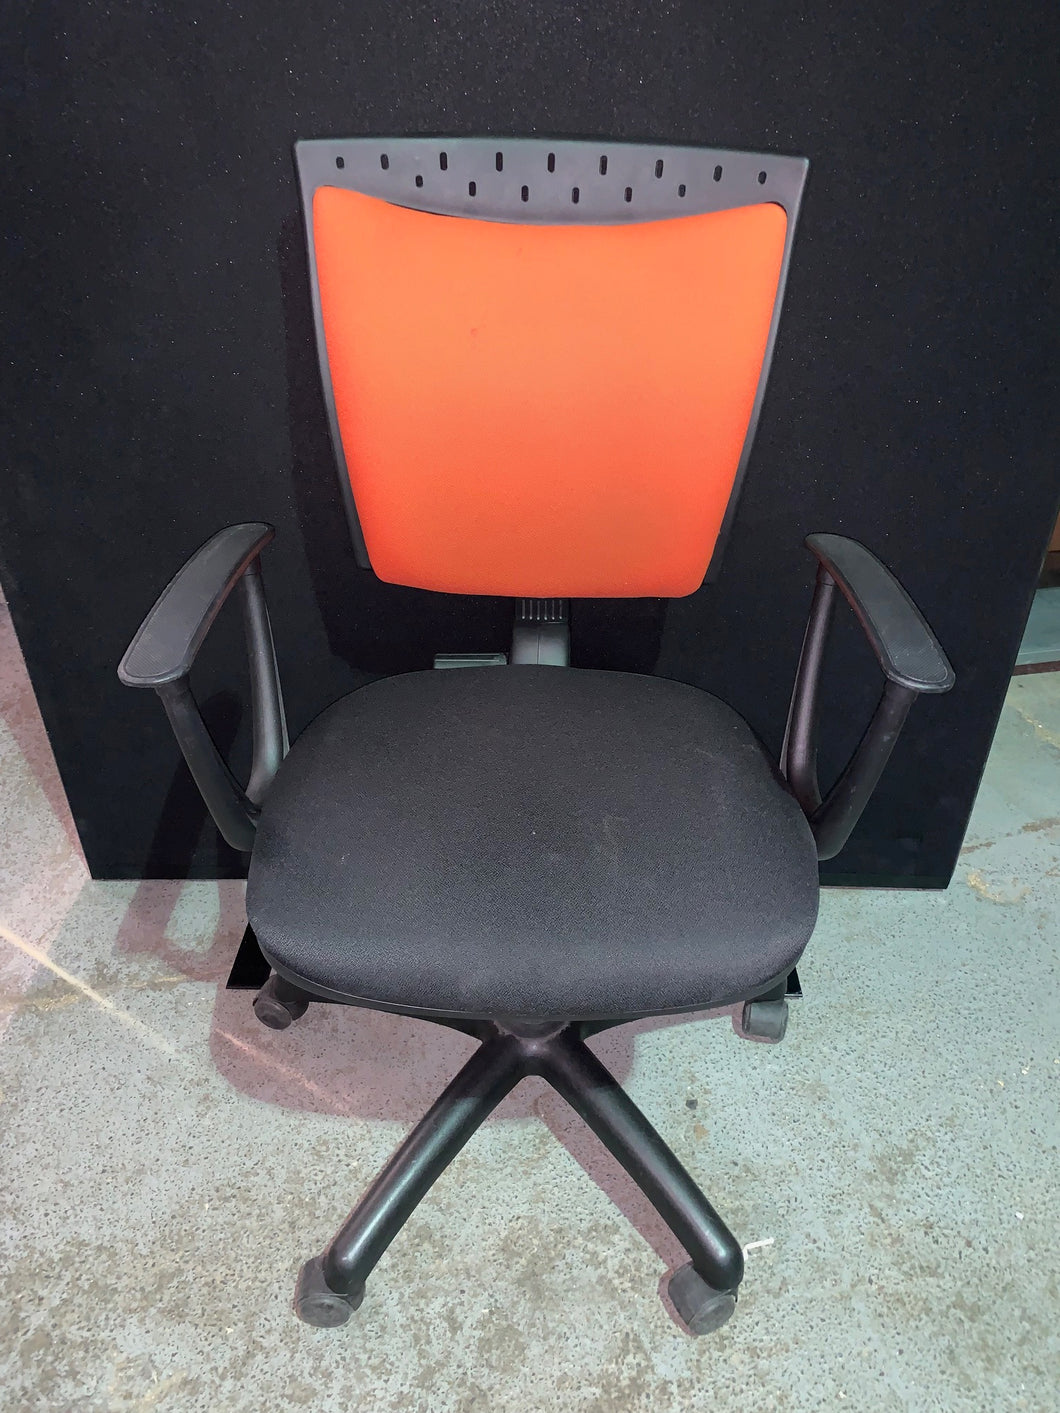 High Back Operators Chair With Arms Orange/Black - Flogit2us.com